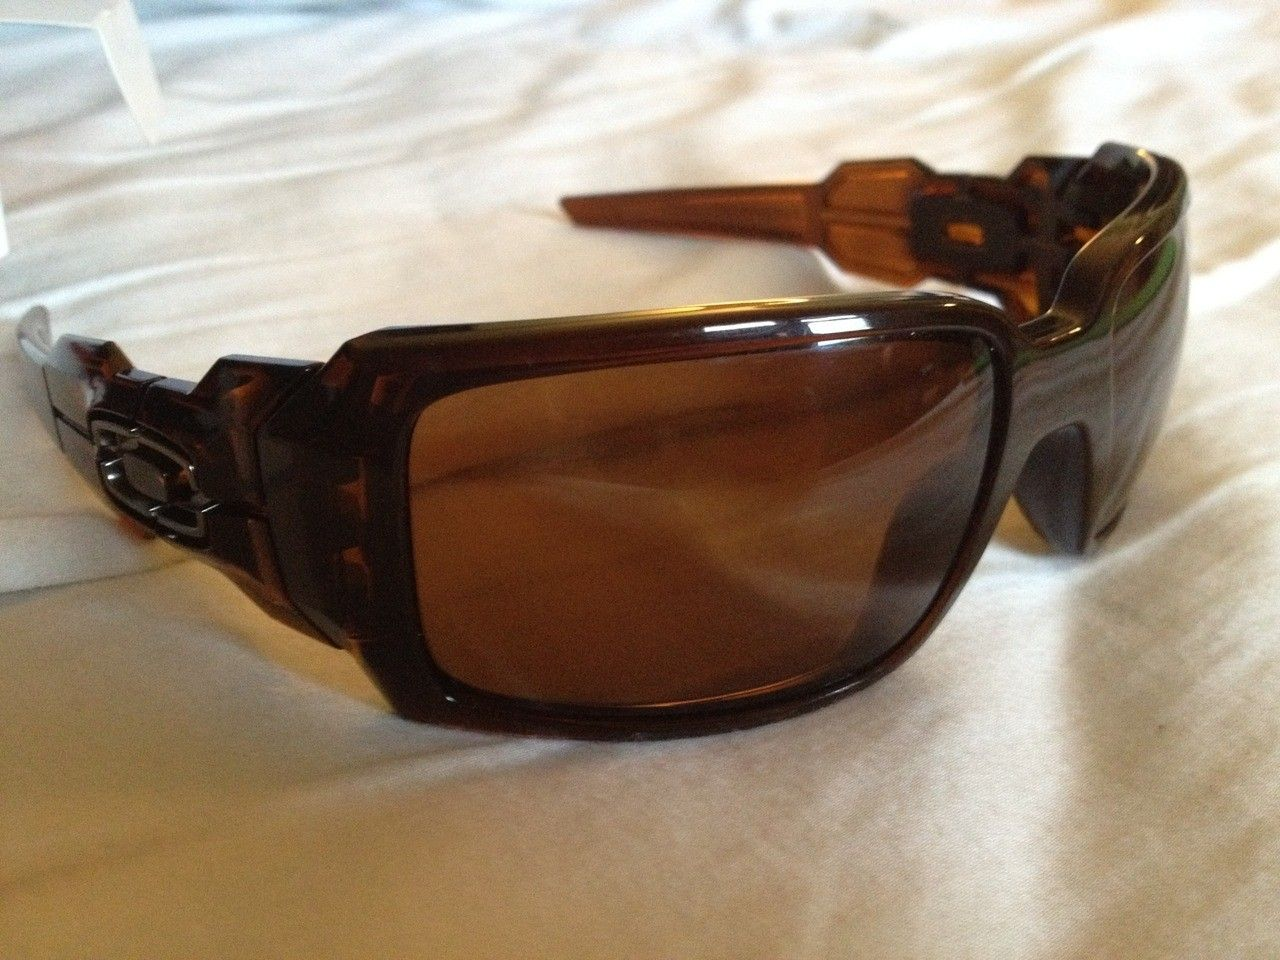 WTS/WTT: Oakley Bronze Oil Drum NEED TO SELL! - tumblr_mch1pwFXWR1rbptugo1_1280.jpg